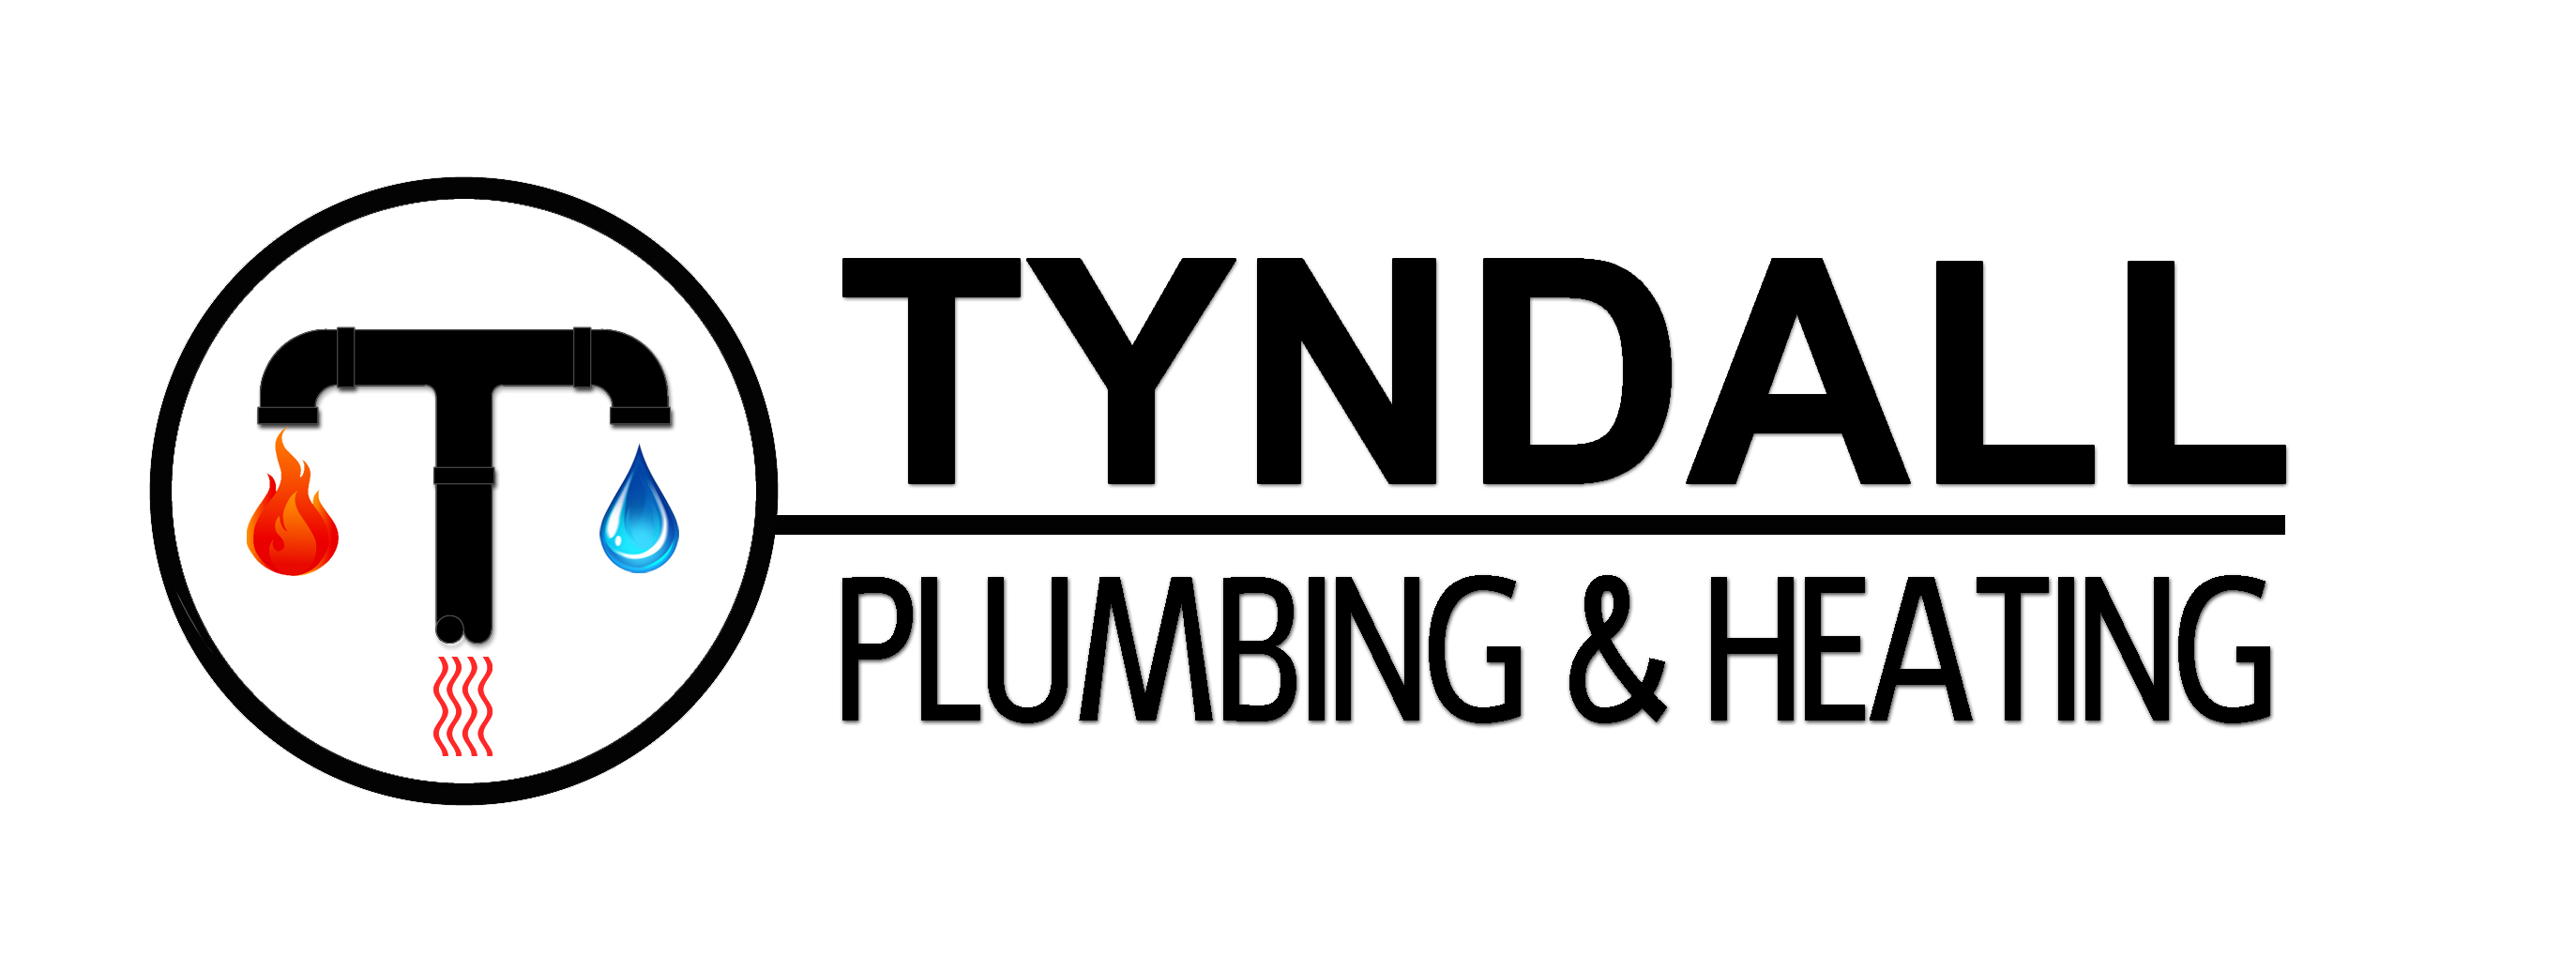 Logo Design by JSDESIGNGROUP - Entry No. 133 in the Logo Design Contest Imaginative Logo Design for Tyndall Plumbing & Heating.